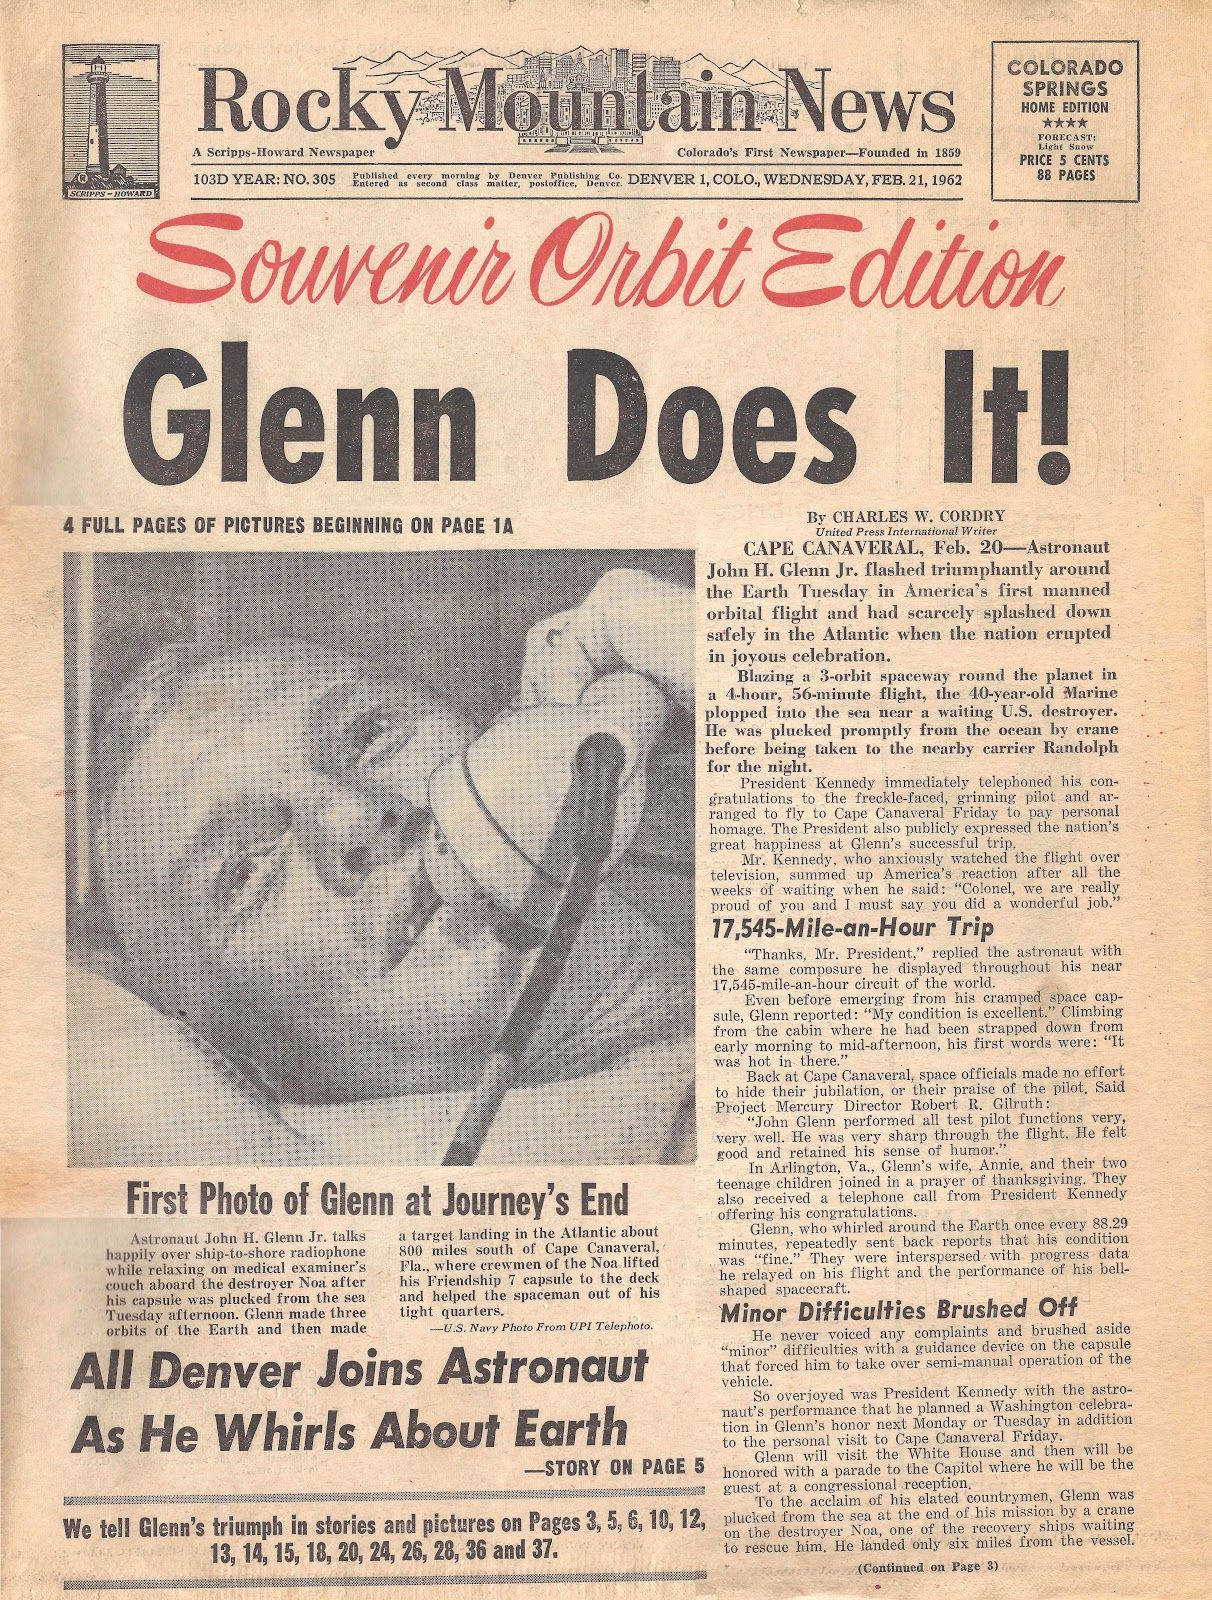 February 20, 1962 John Glenn became the first American to